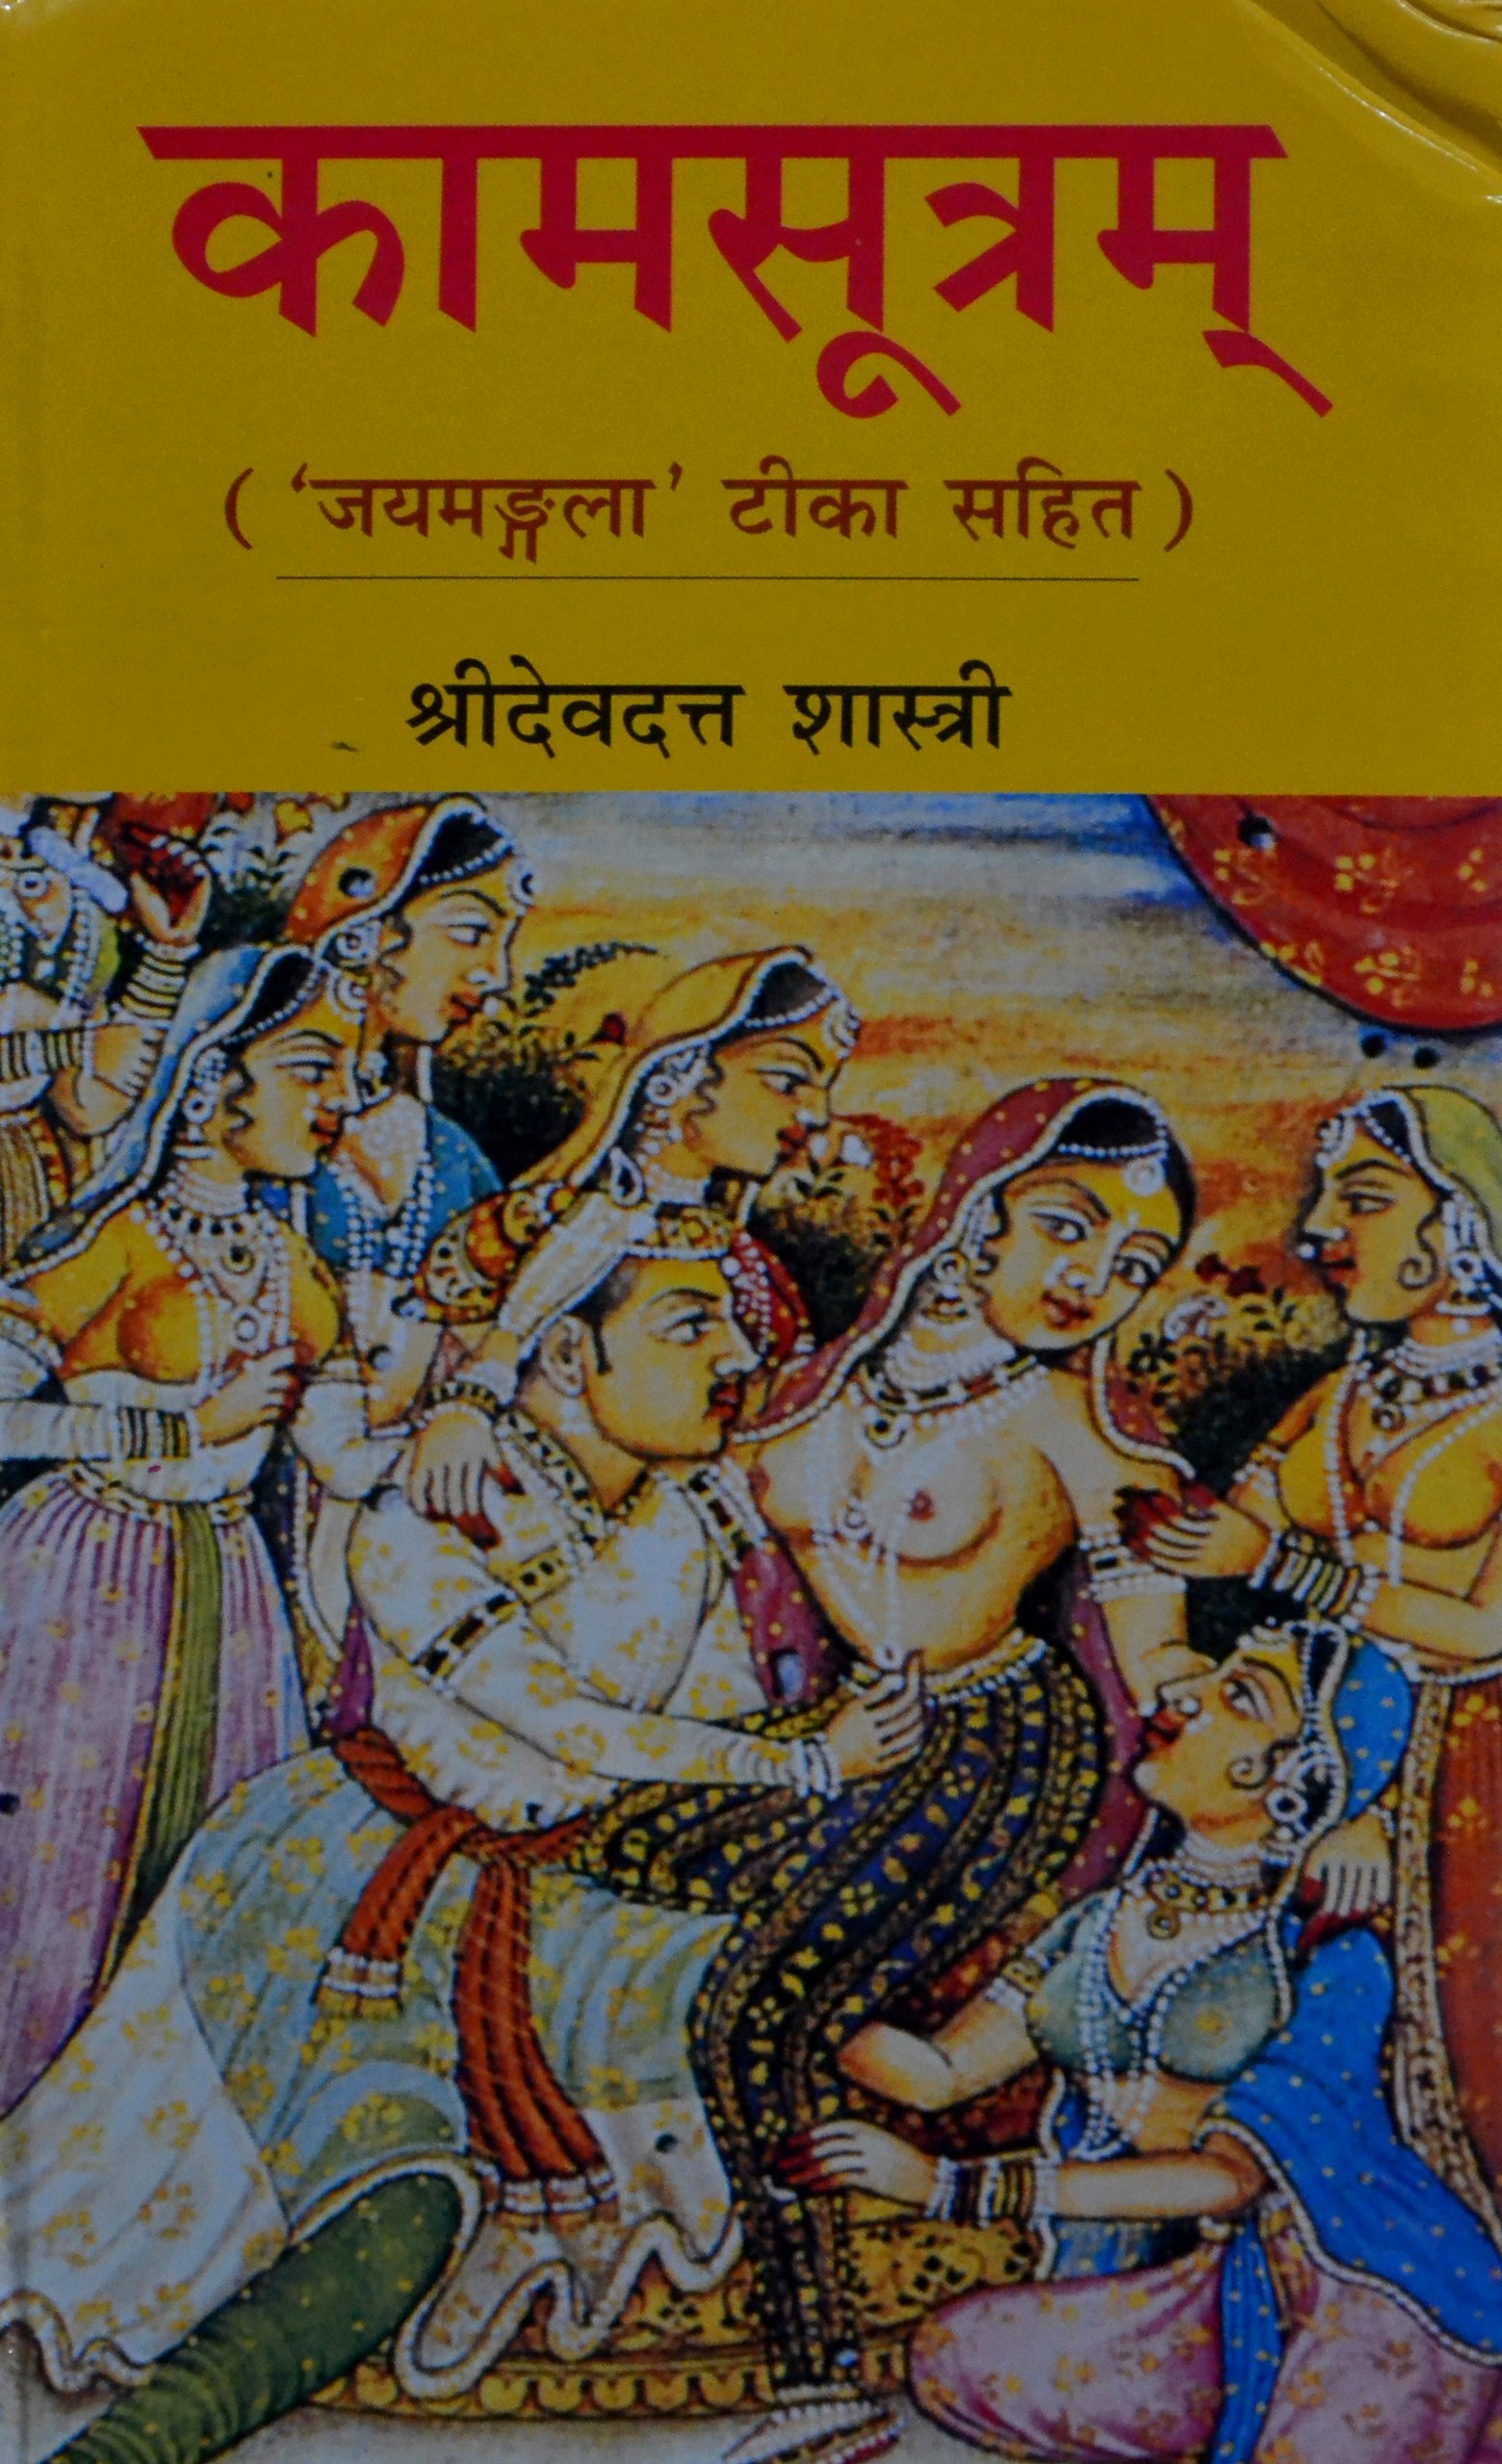 Buy Kamasutra Book Online At Low Prices In India Kamasutra Reviews Ratings Amazon In